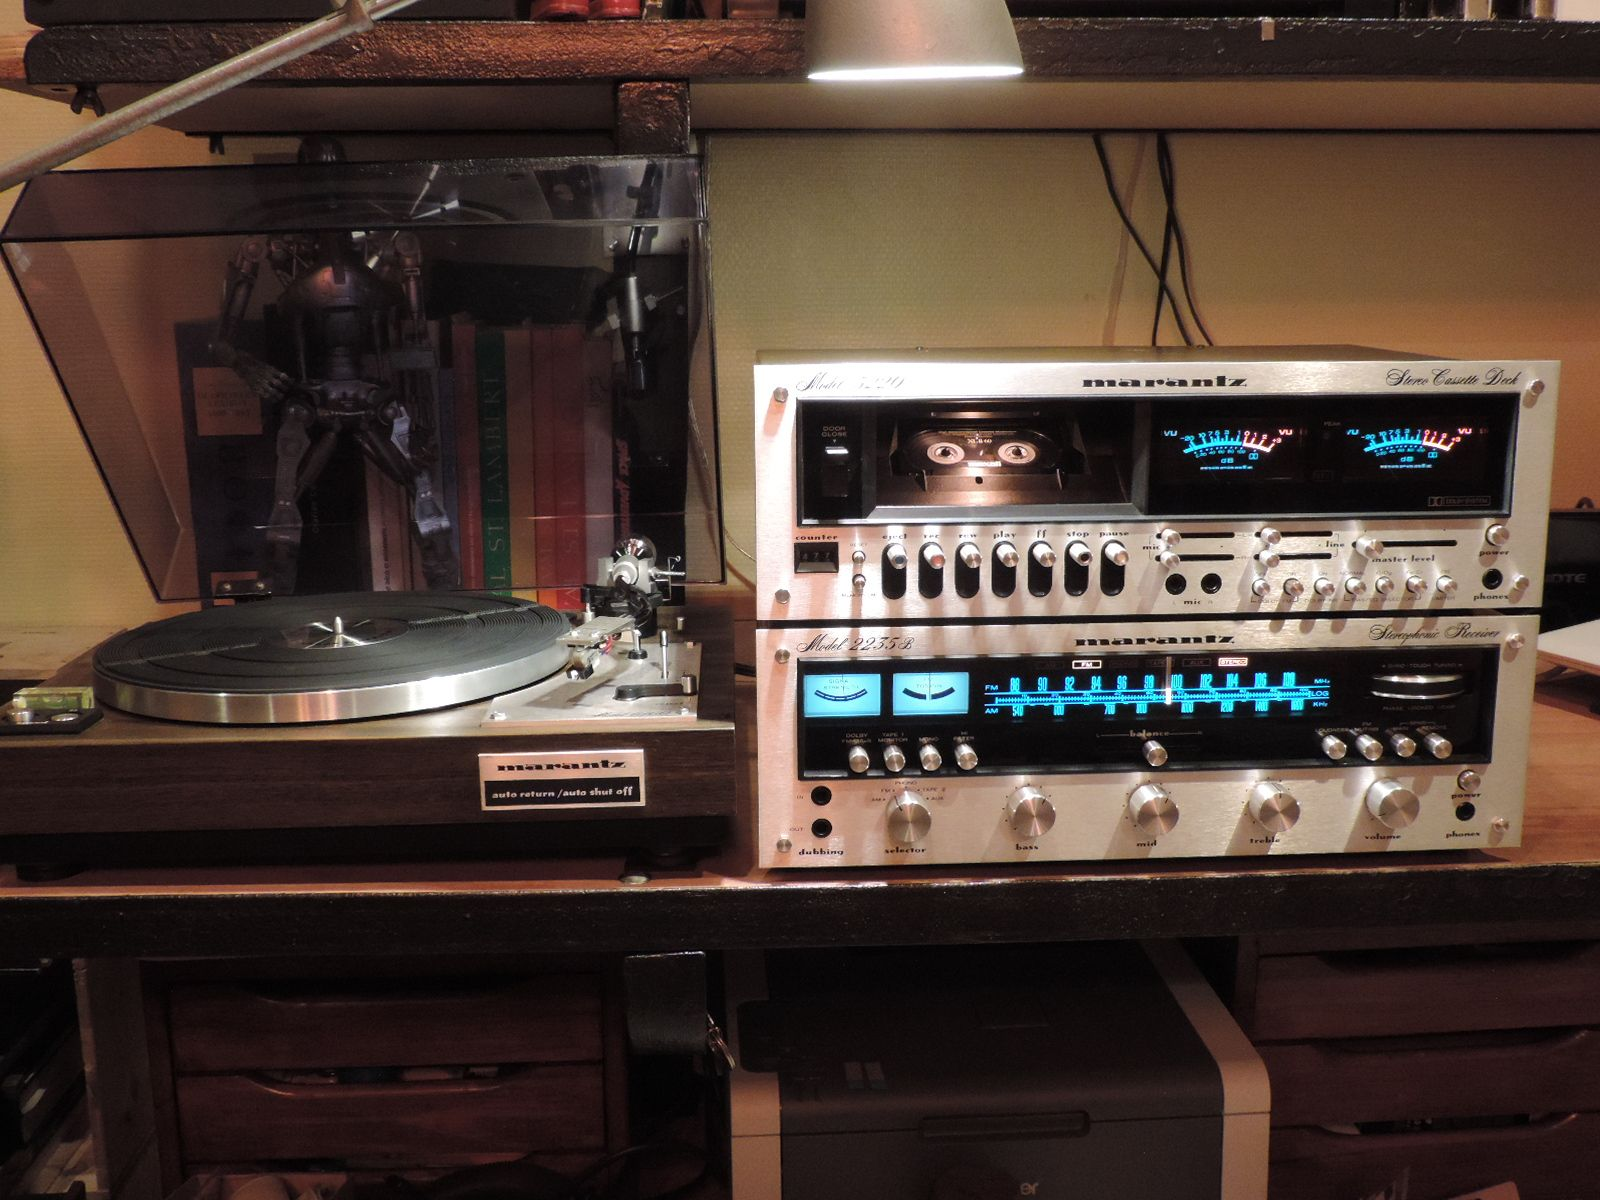 Marantz 6100 Turntable, 2235B Receiver and 5220 Tape Deck